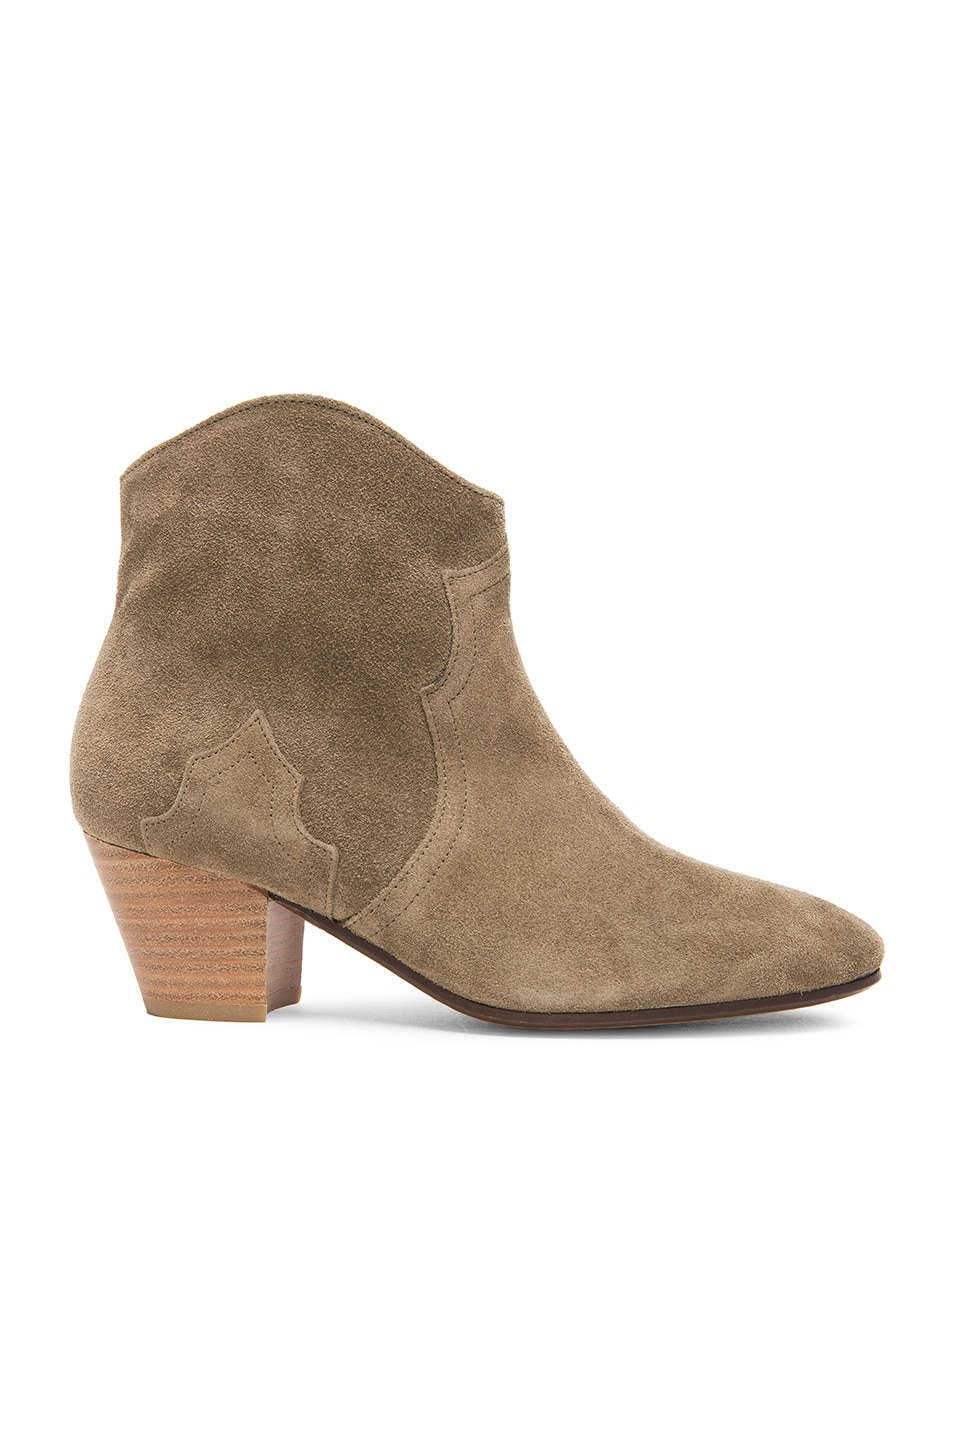 Image 1 of Isabel Marant Etoile Dicker Calfskin Velvet Leather Boots in Taupe